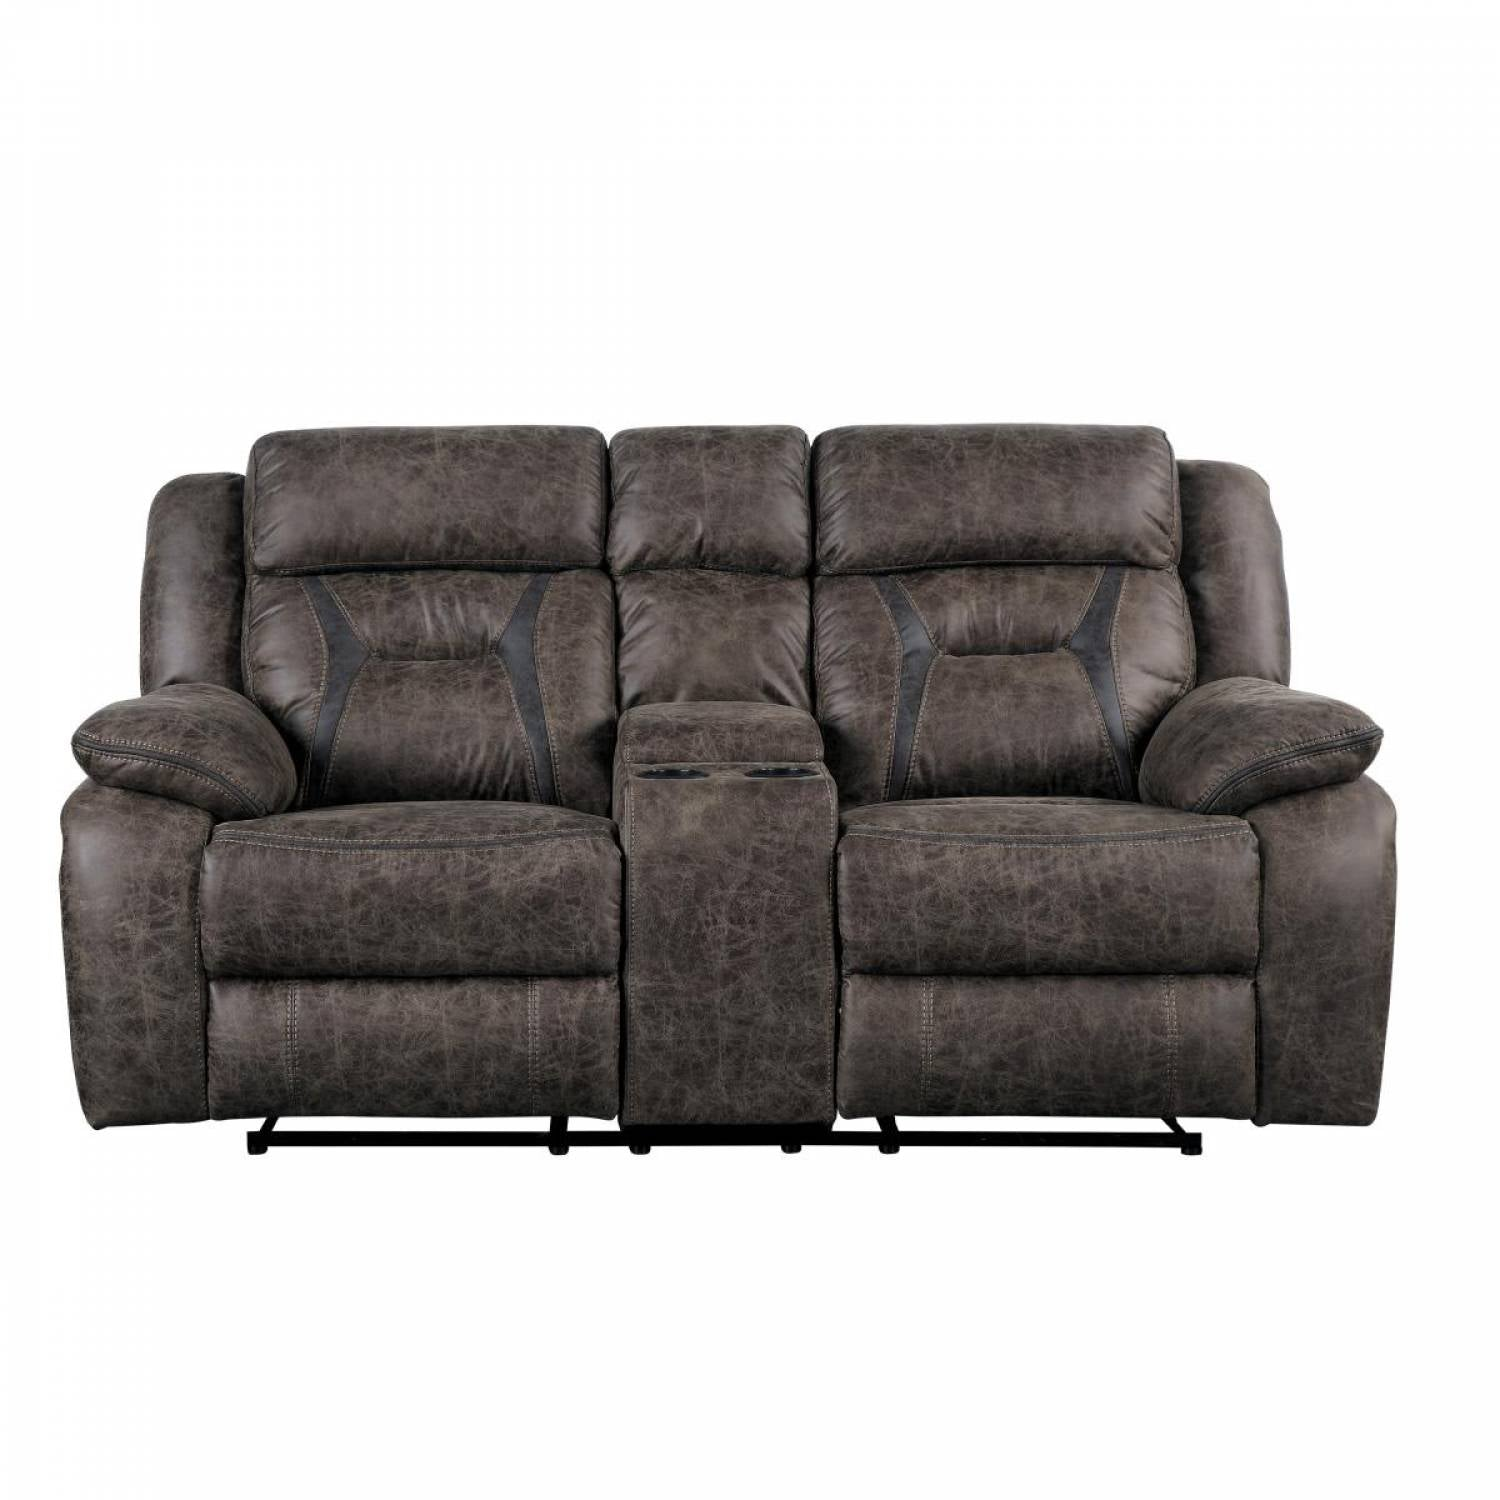 Madrona Reclining Loveseat